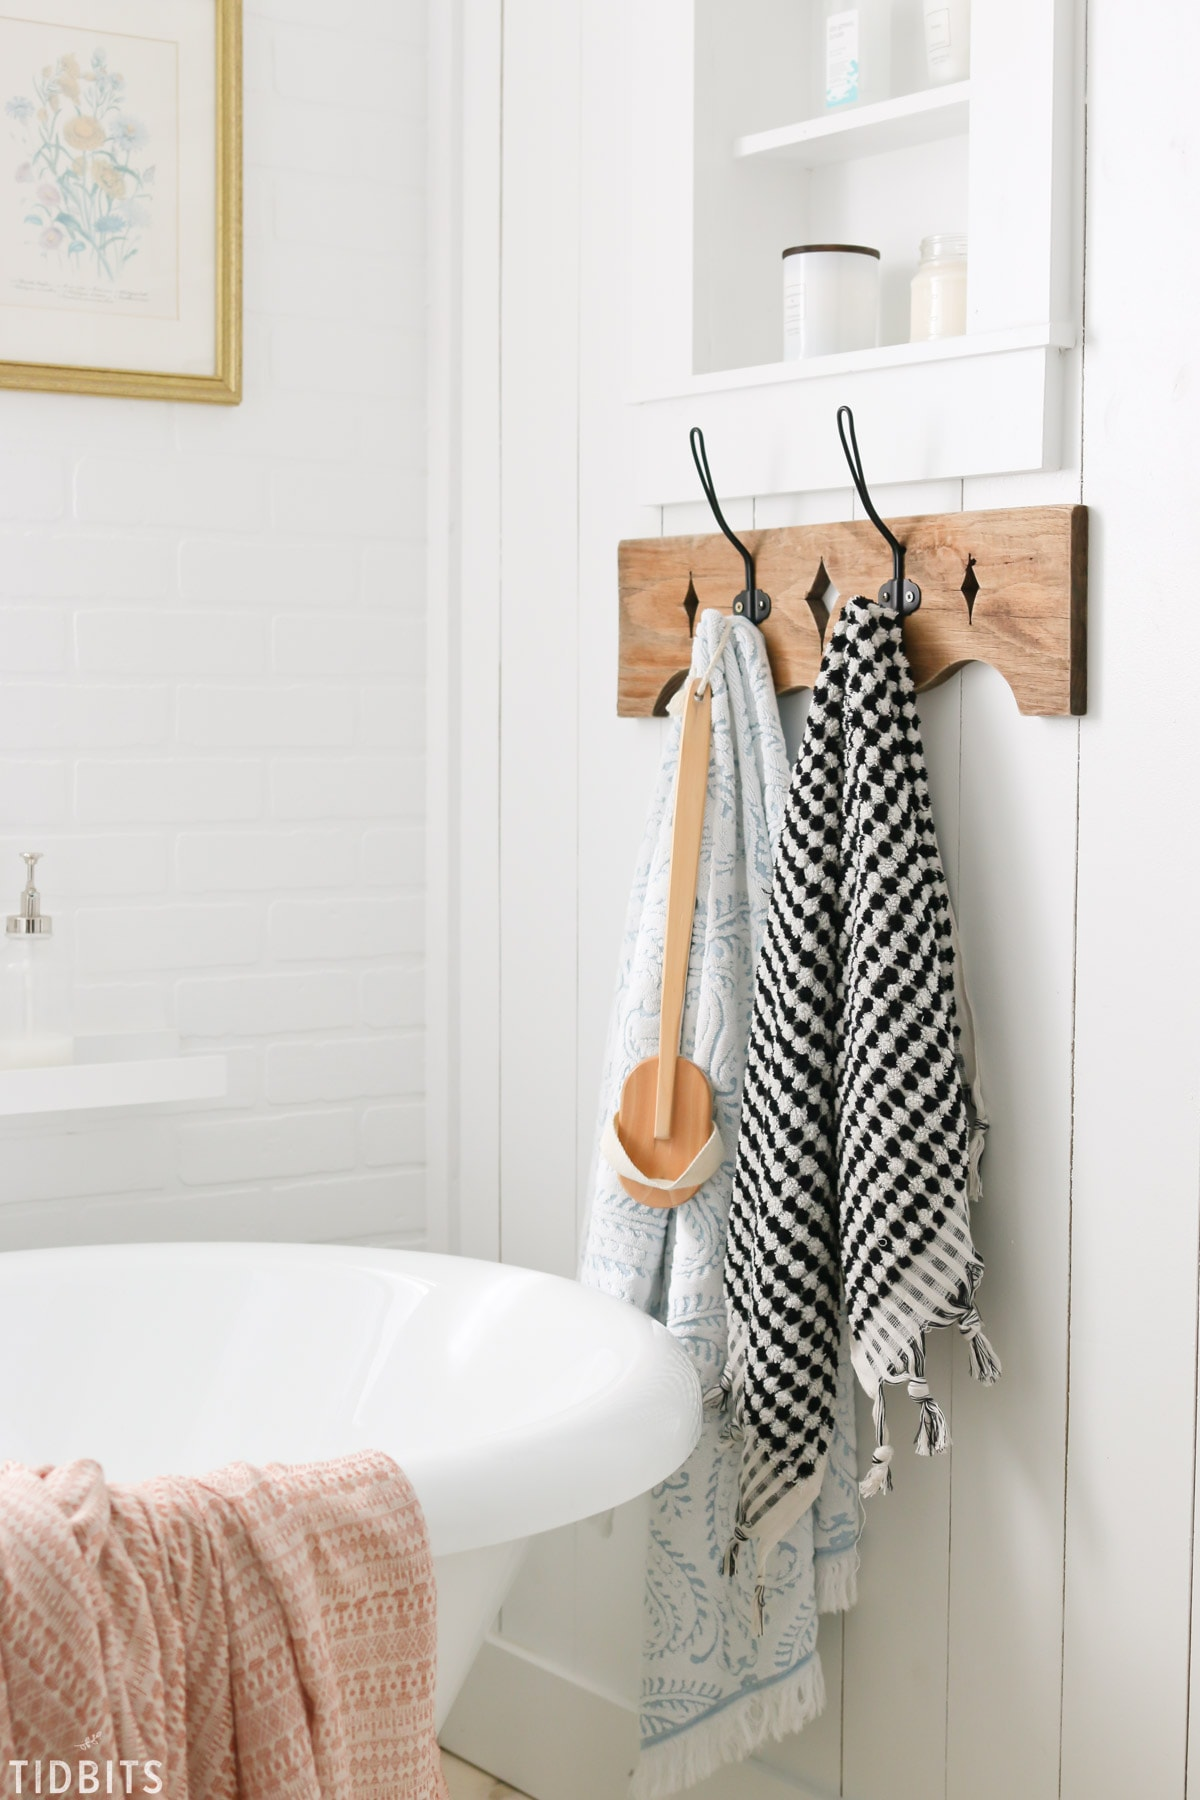 TIDBITS Fall Home Tour | Subtle changes in the Bathroom